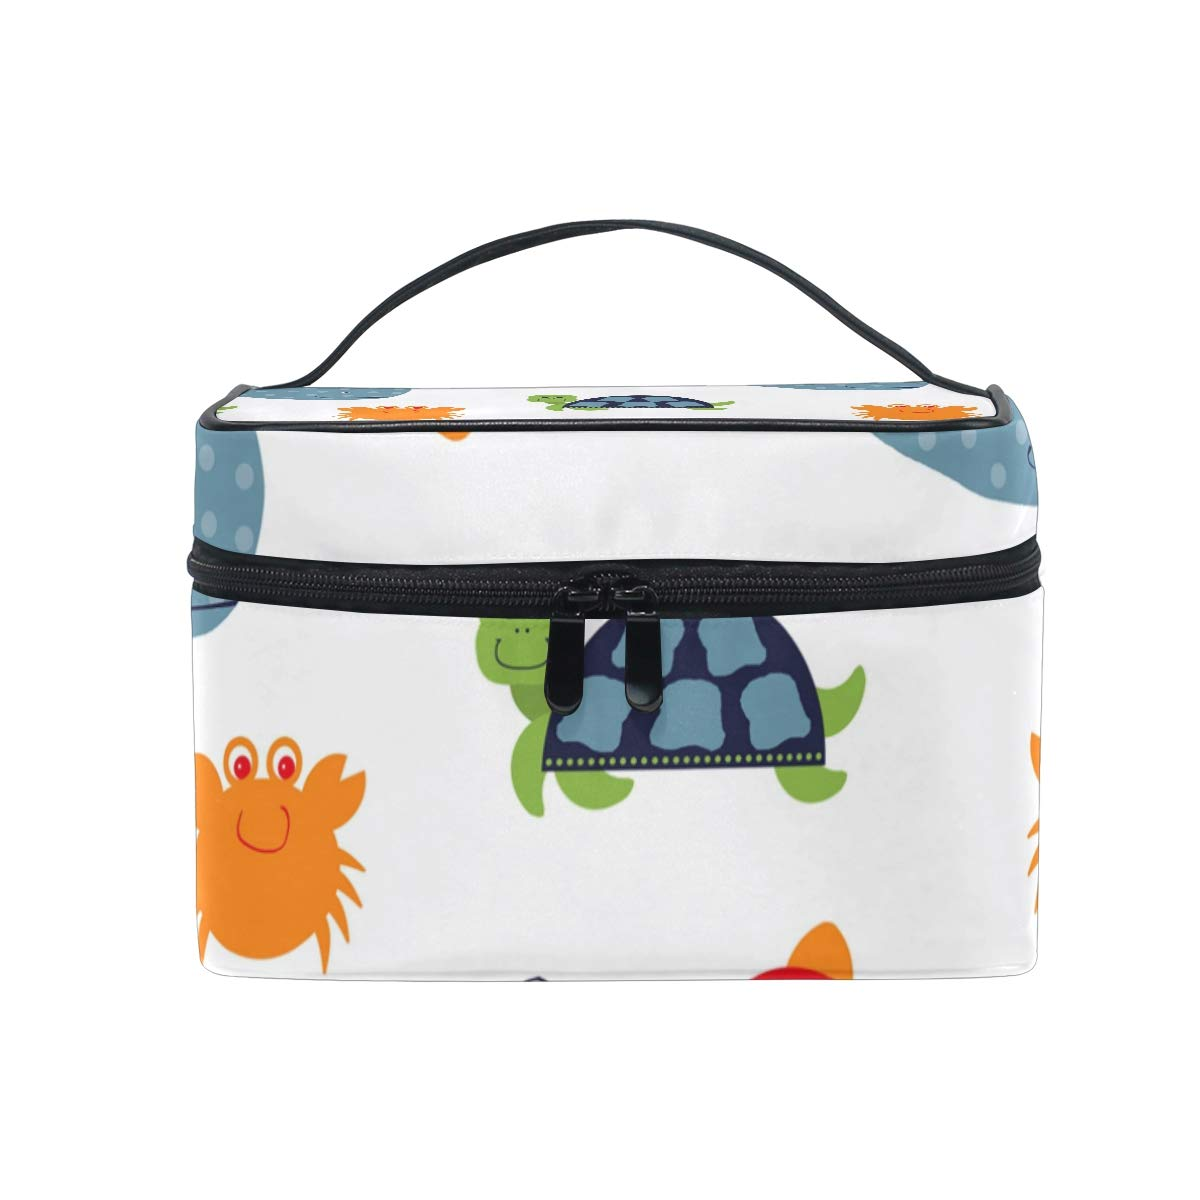 LORVIES Sea Creatures Cosmetic Bag Canvas Travel Toiletry Bag Top Handle Single Layer Makeup Bag Organizer Multi-function Cosmetic Case for Women